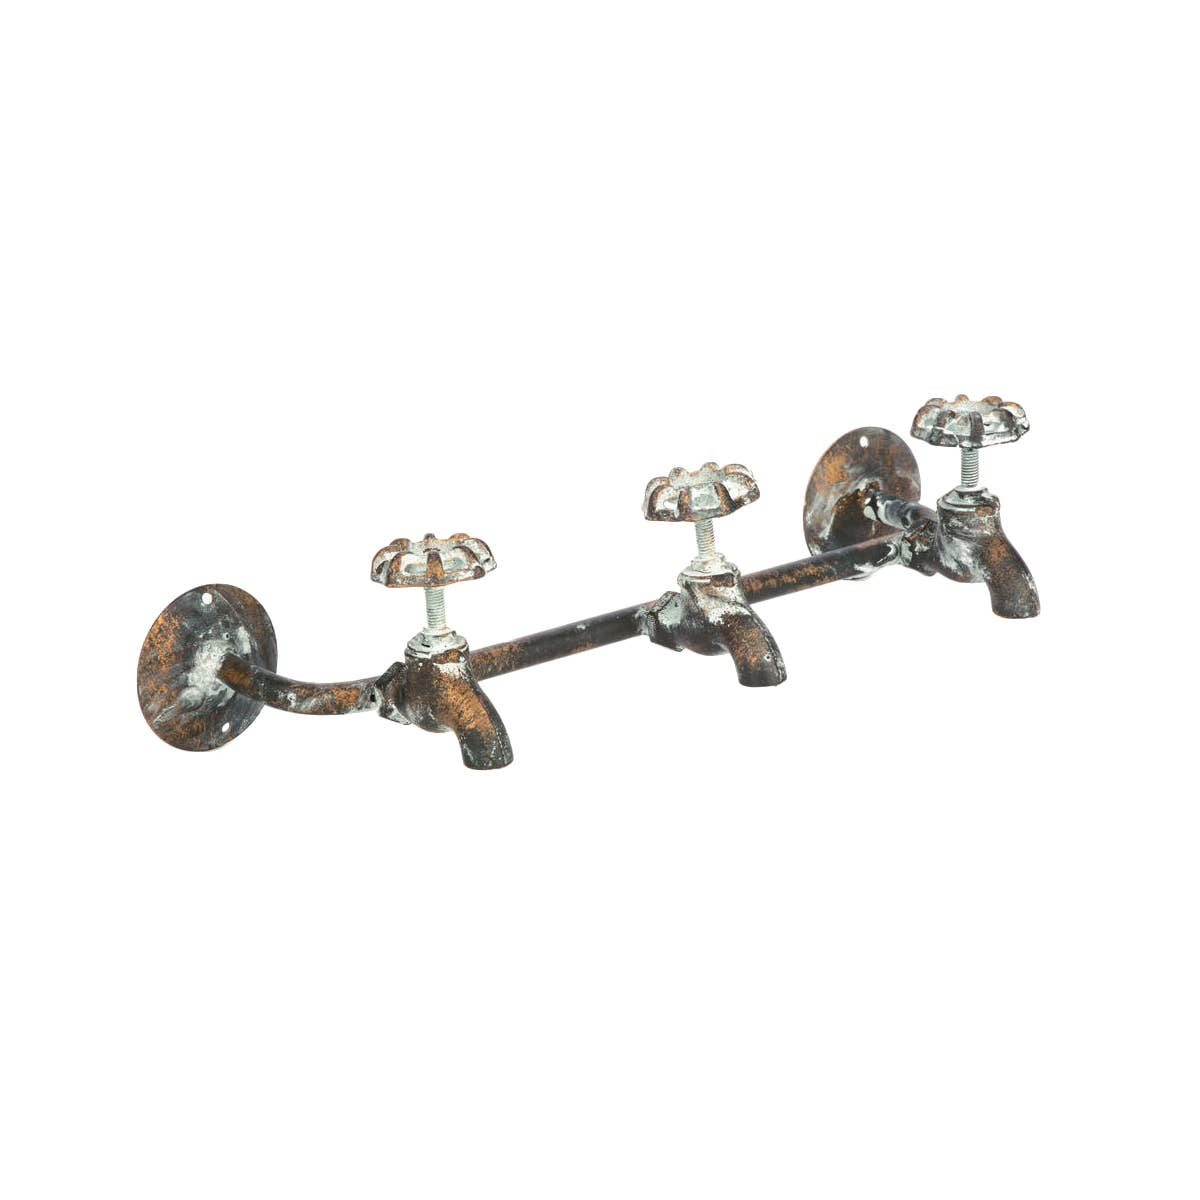 3 Knob Water Spigot Wall Hook